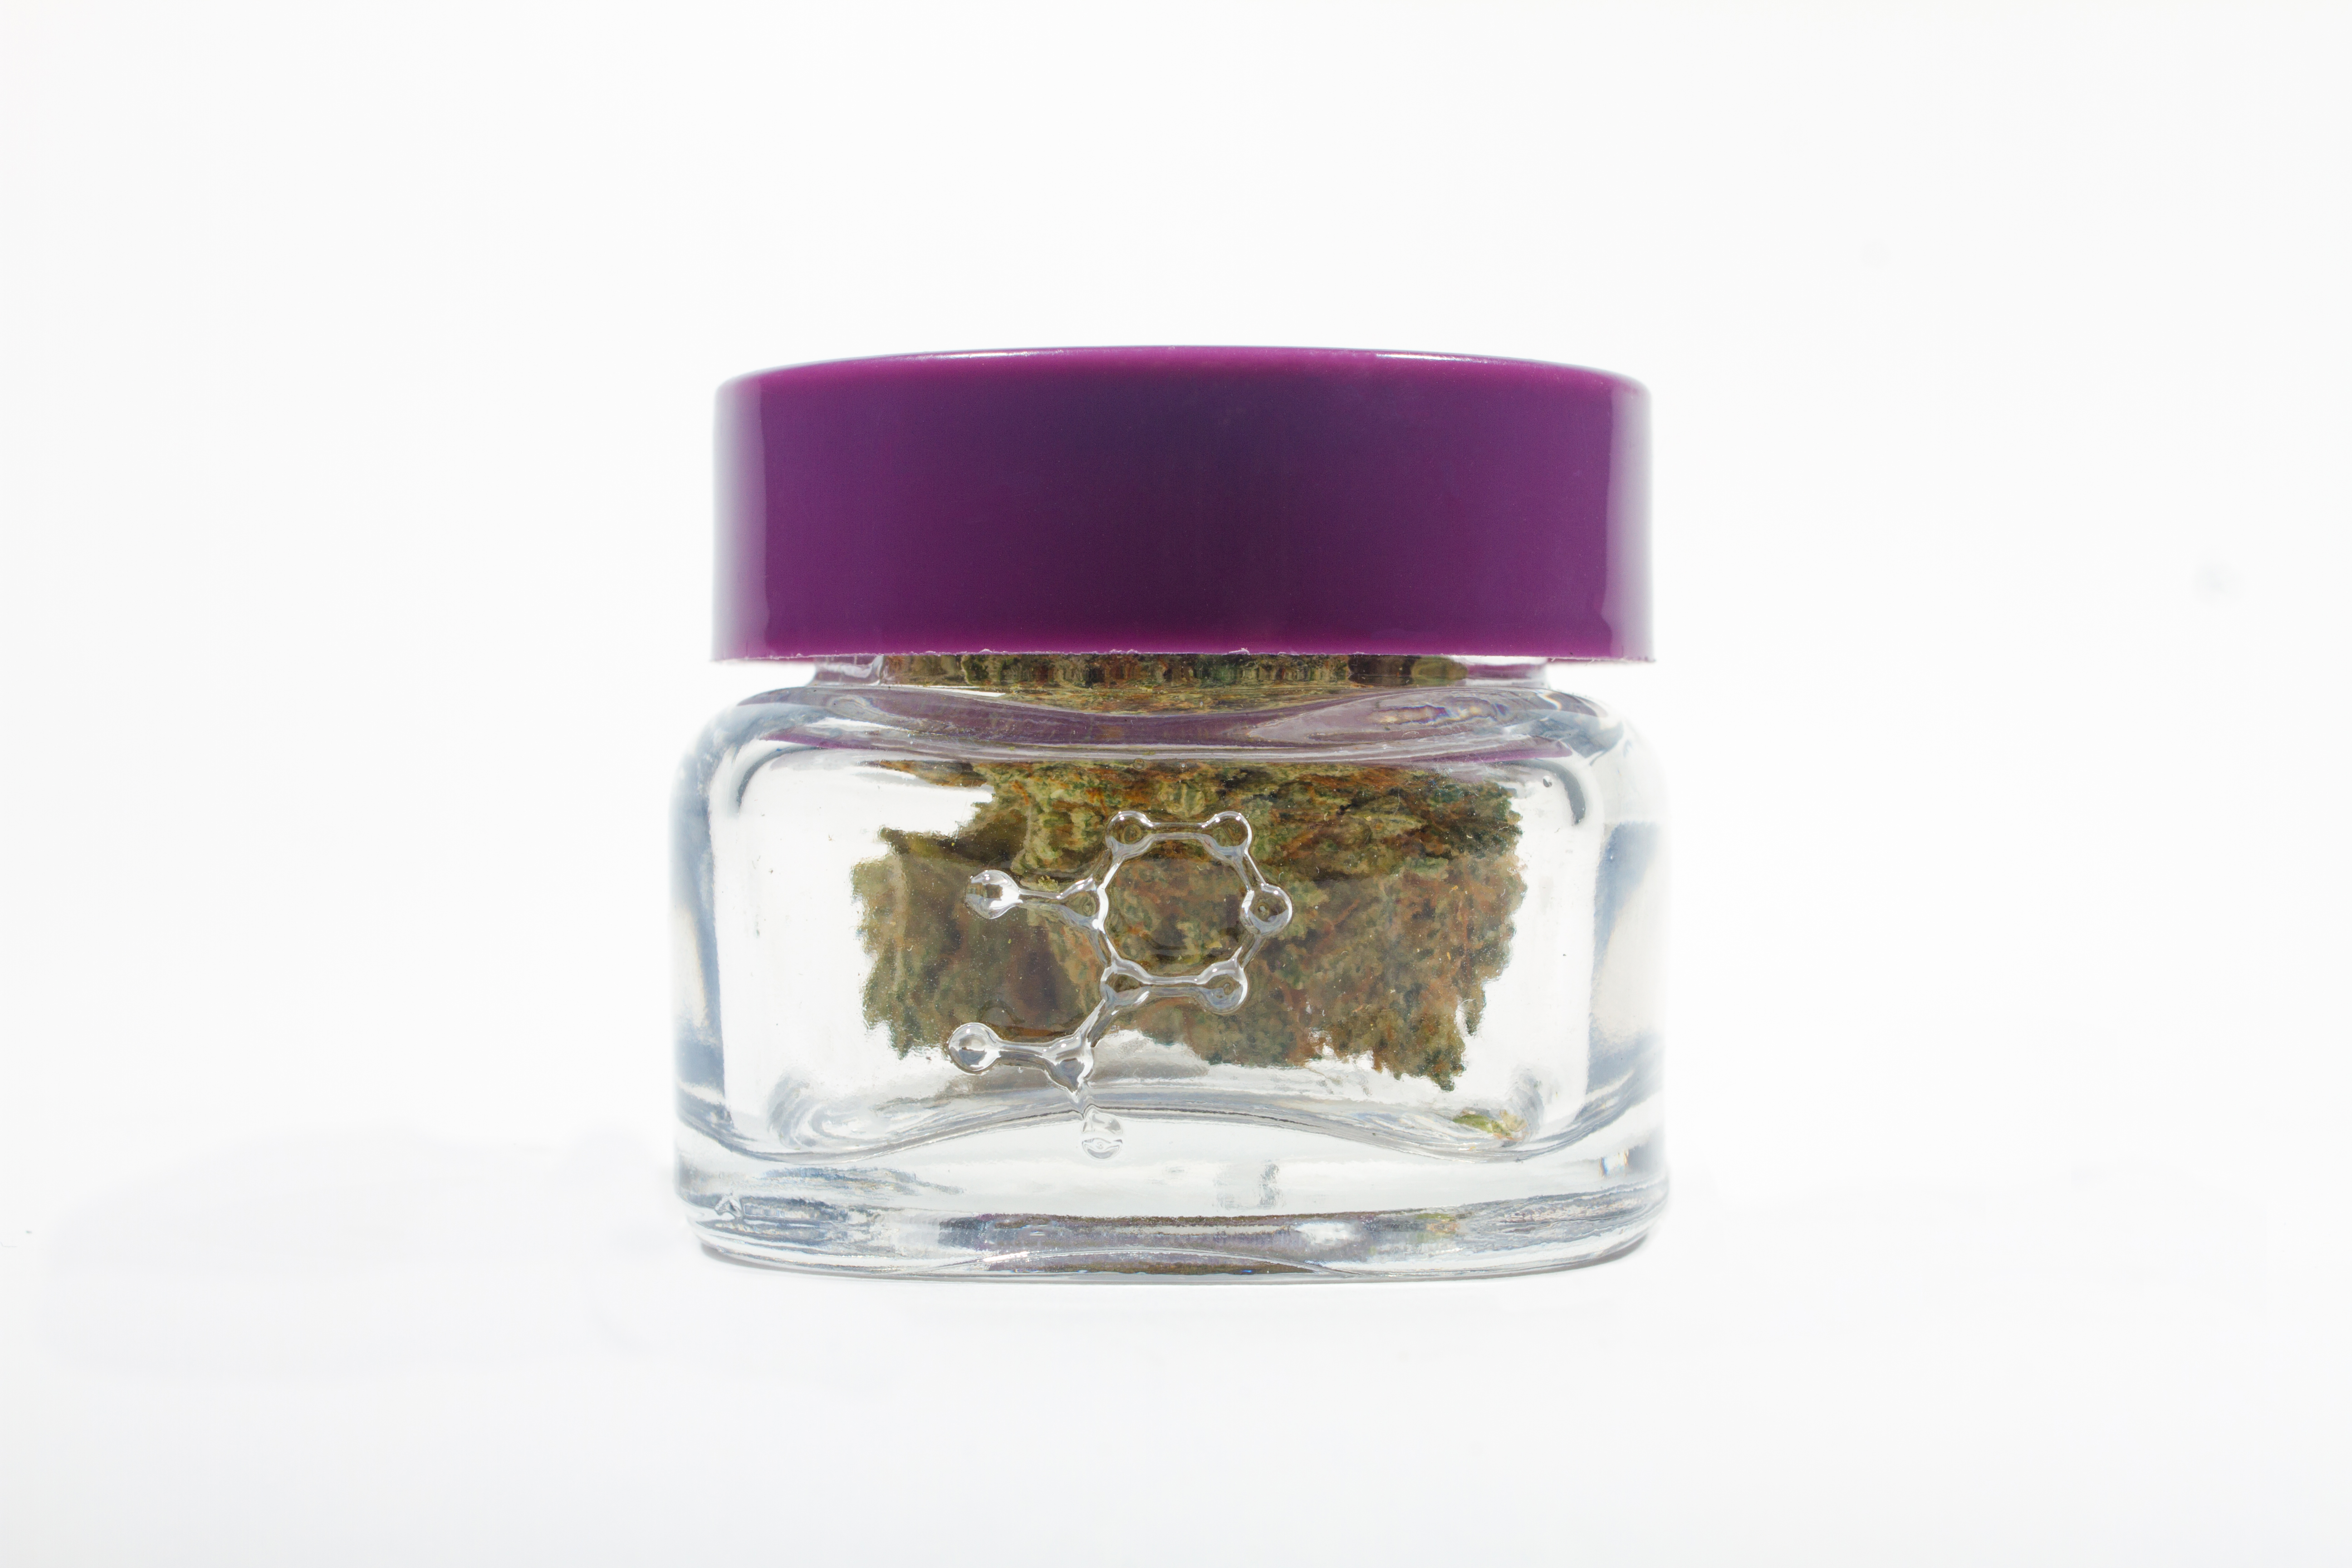 HEAVY GLASS JAR DIRECT FRONT FINAL-6188